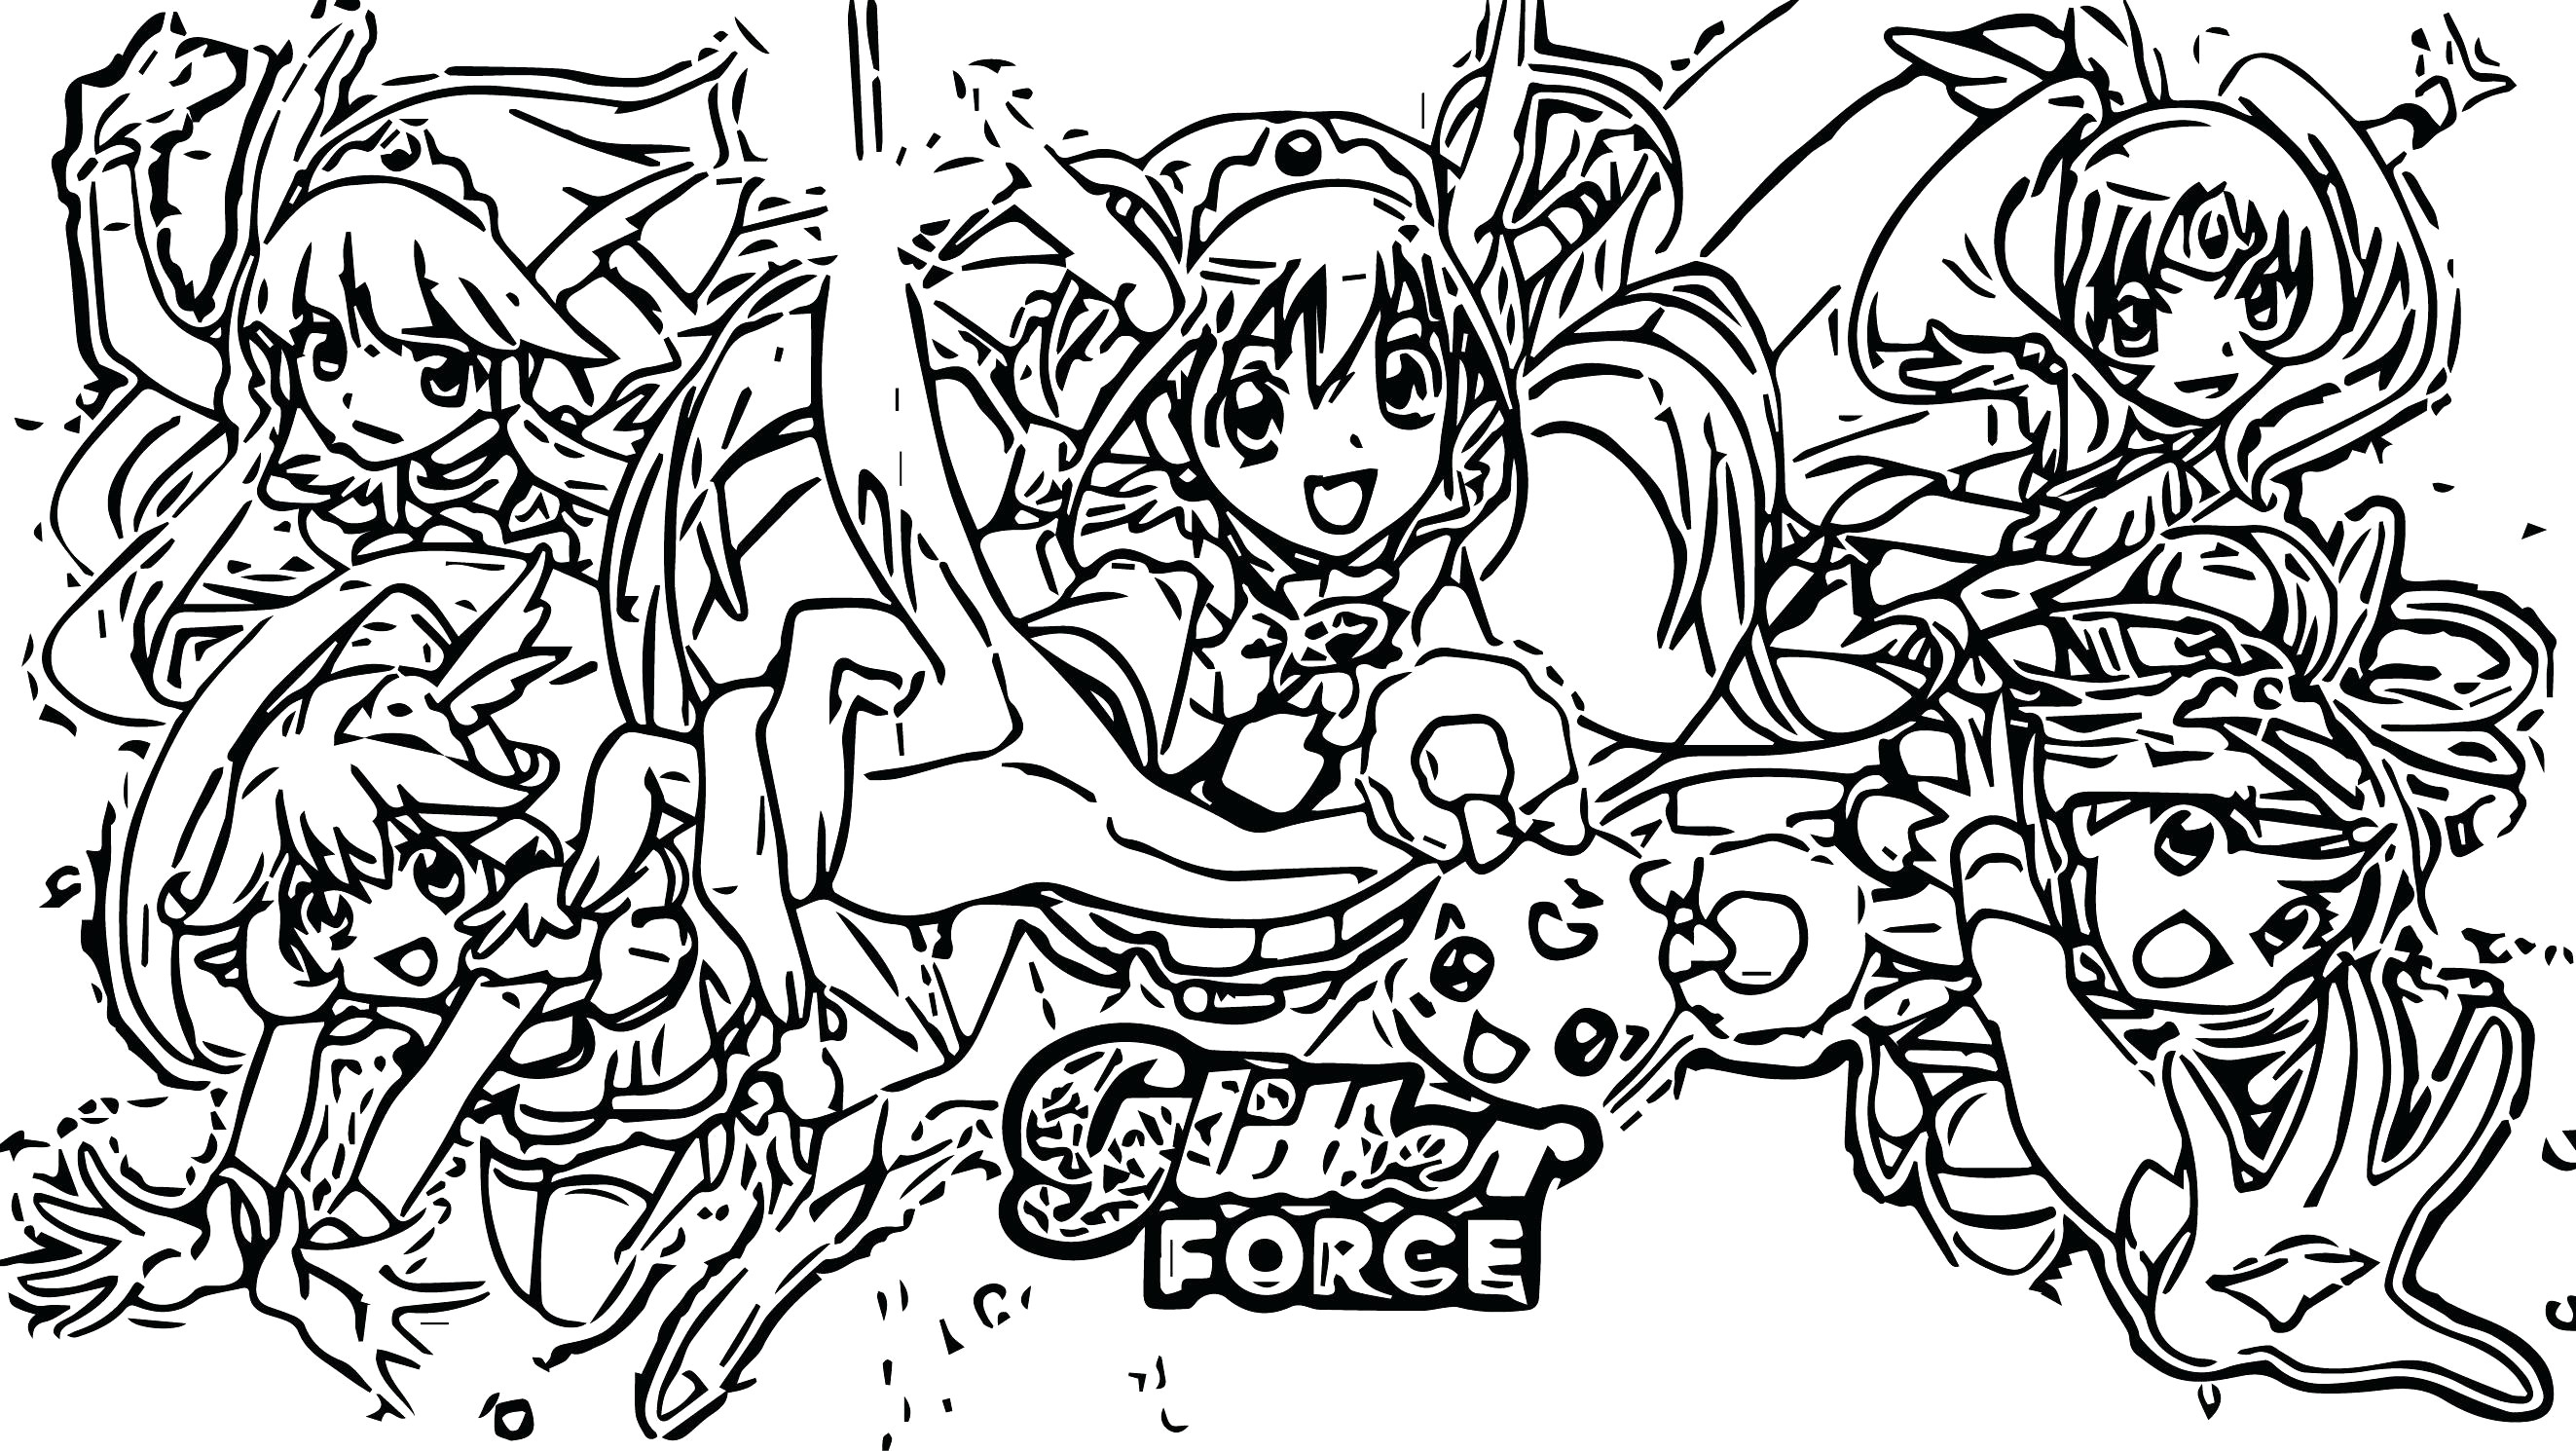 Glitter Force Coloring Pages Coloring Pages Glitter Force New Pretty Cure Google Search Of Png